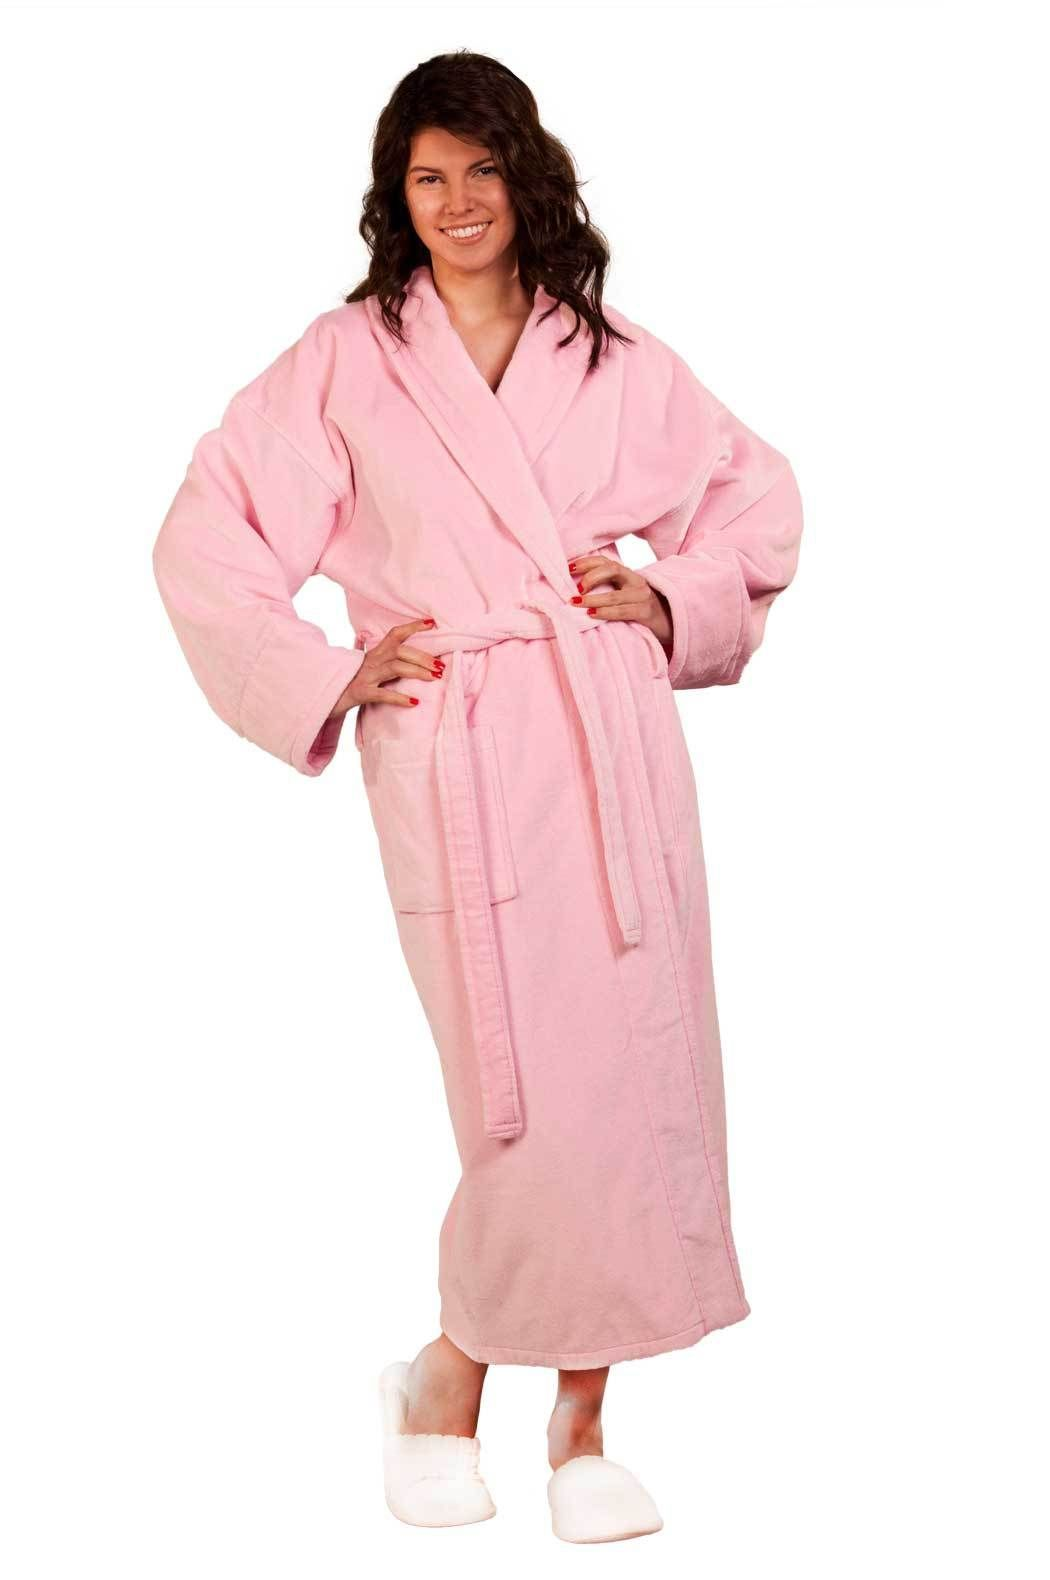 Bathrobes Online Store: bathrobes for women, bathrobes for men. We have Deluxe model, Monk Luxury model and Hood'n Full model bathrobes in this category Luxury style bathrobes, bathrobes for women and bathrobes for men.